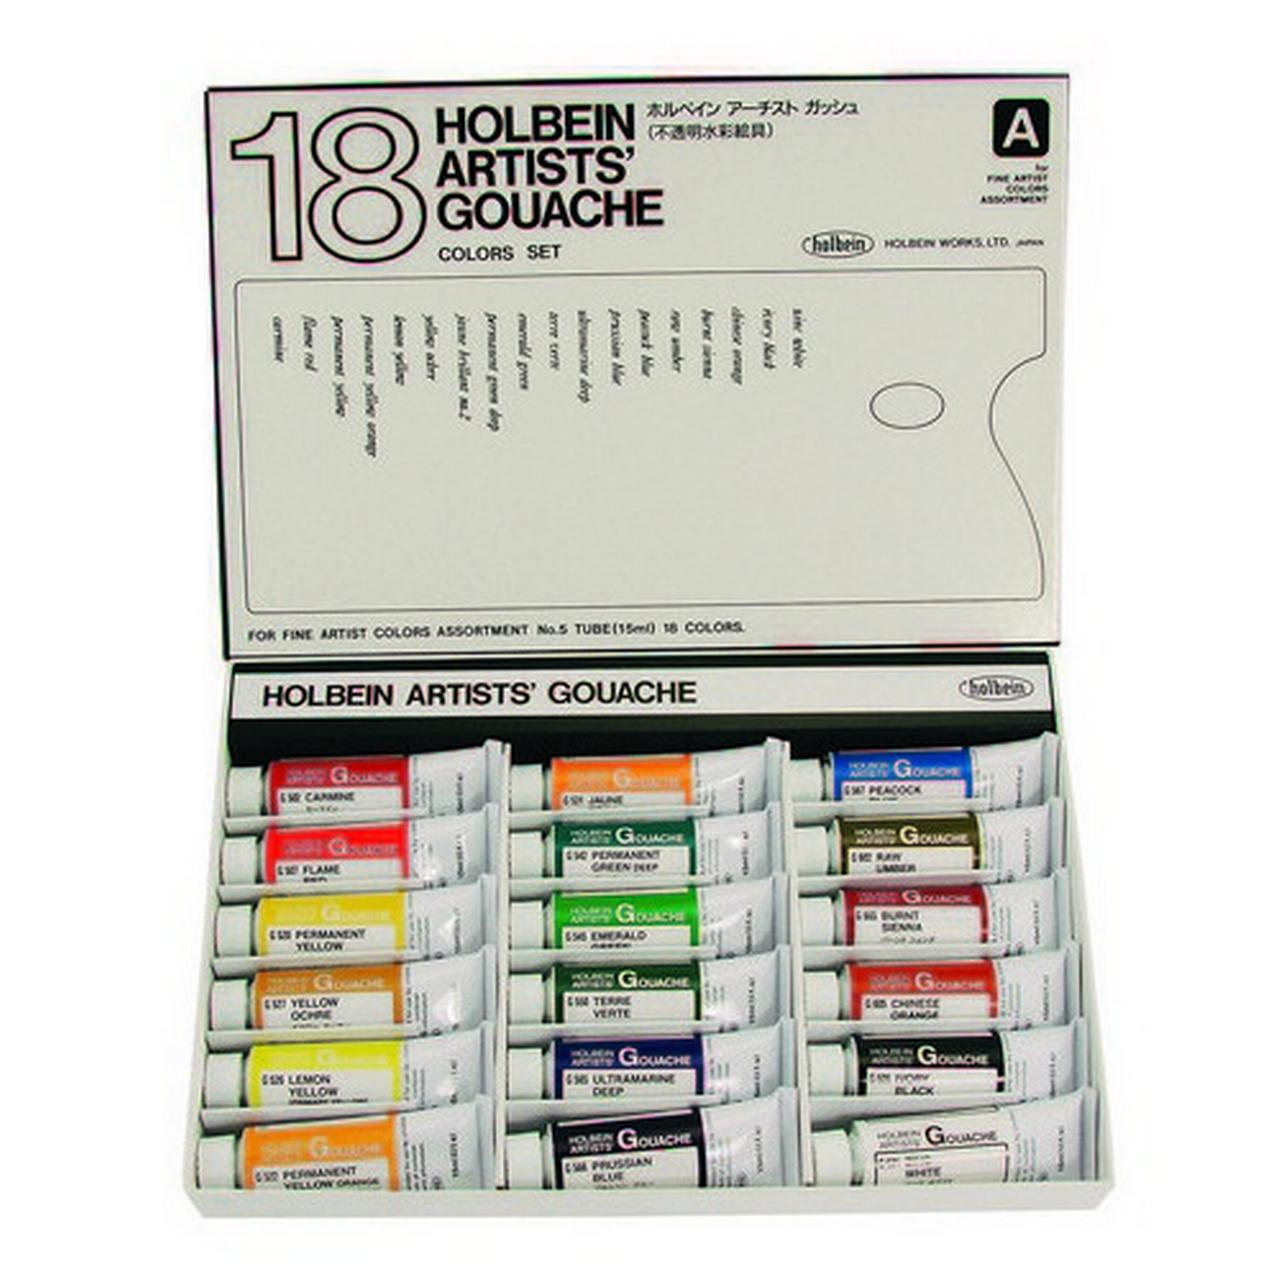 HOLBEIN ARTISTS COLORS G712 DESIGNERS GOUACHE ARTIST SET OF 18 15ML TUBES